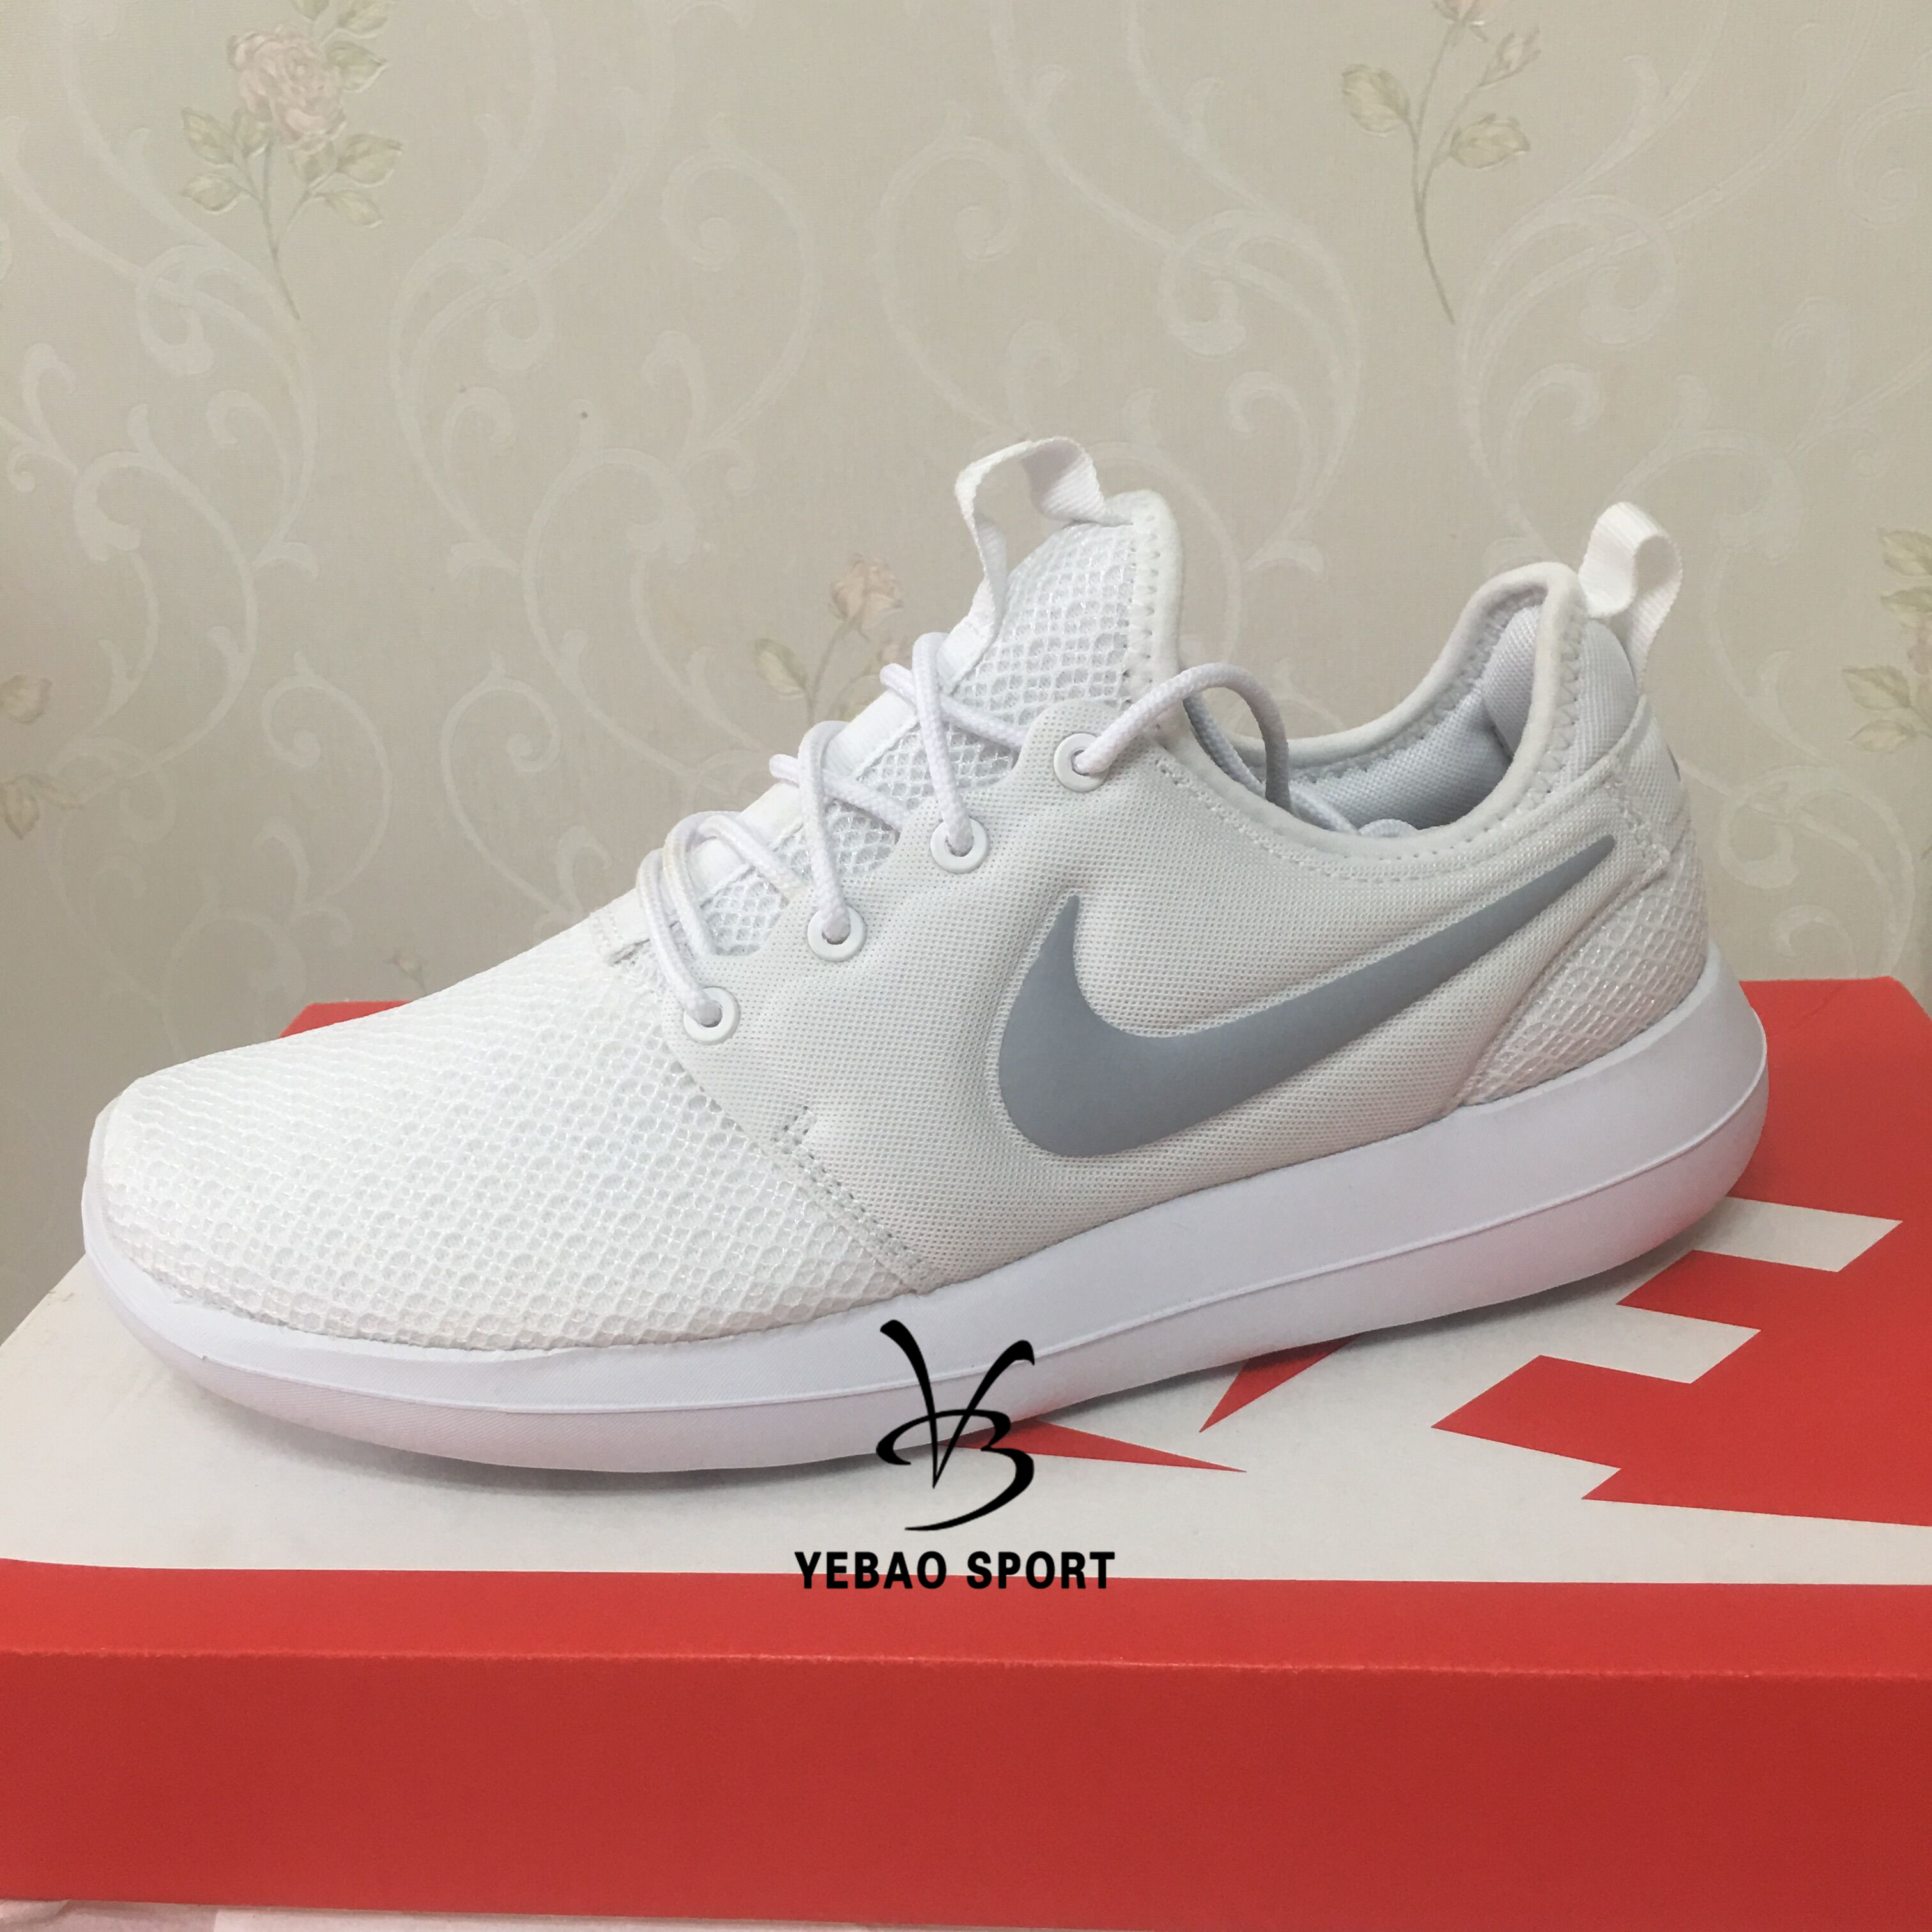 d92ff263f731 Nike ROSHE TWO women s sports running shoes 844931 002 006 100 101 007